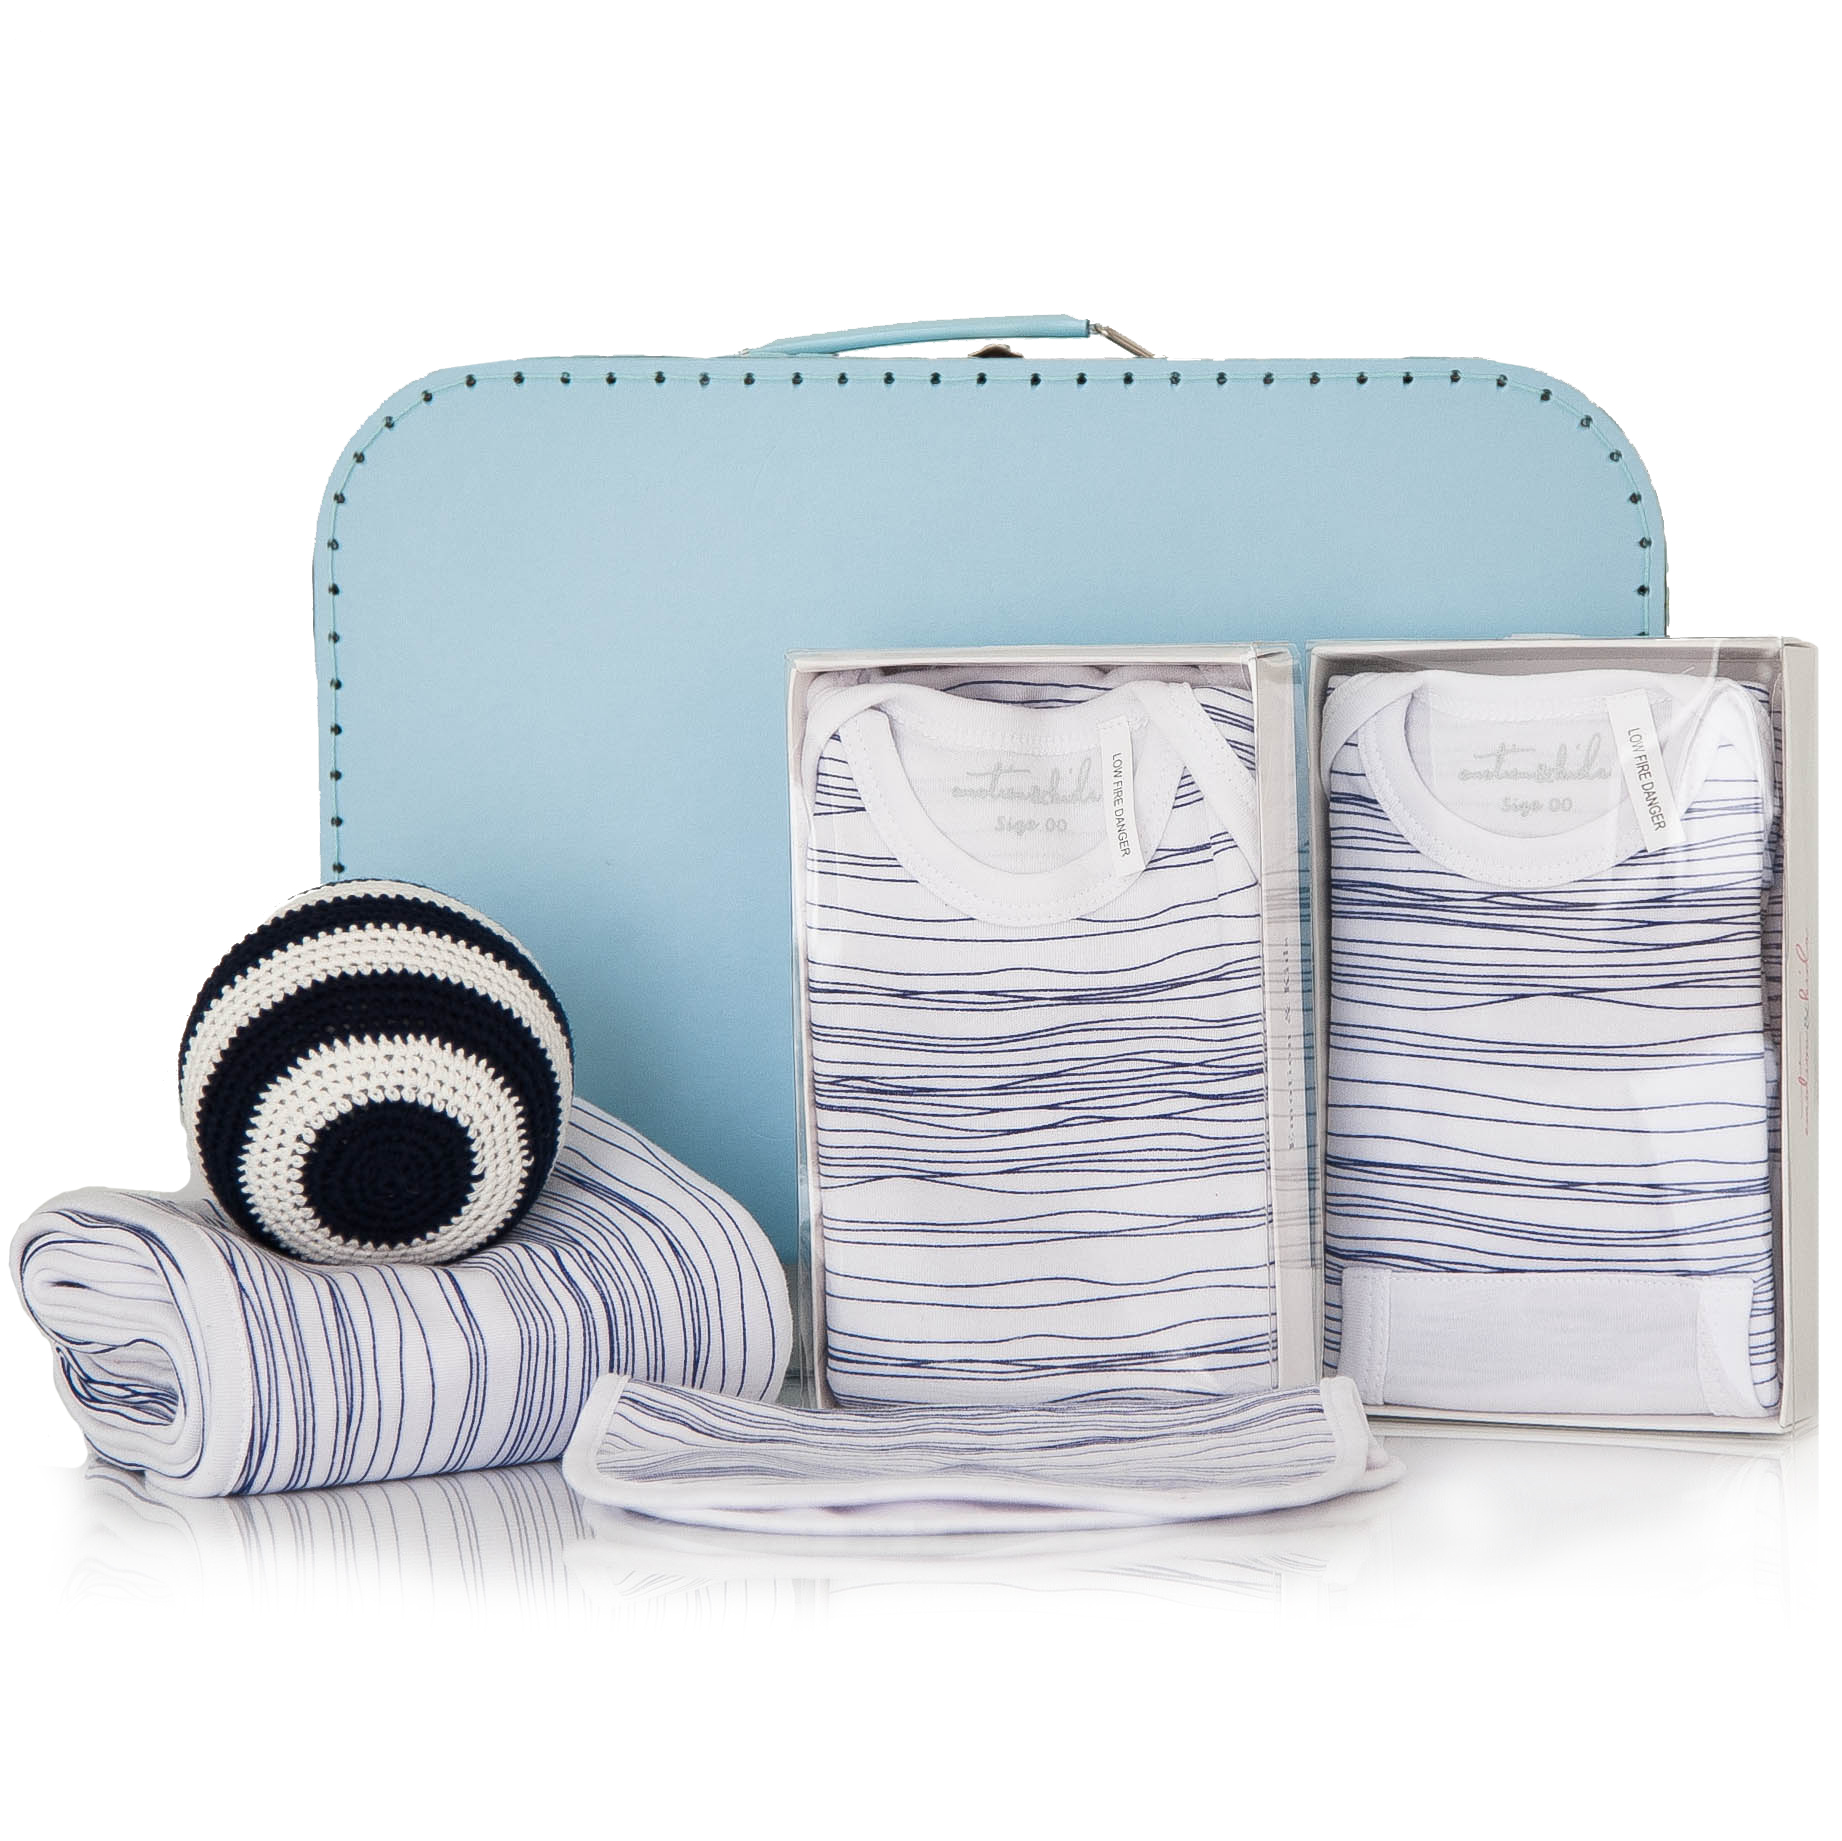 Baby Boy Gifts Melbourne : Gift wrapped up baby boy hamper scribble